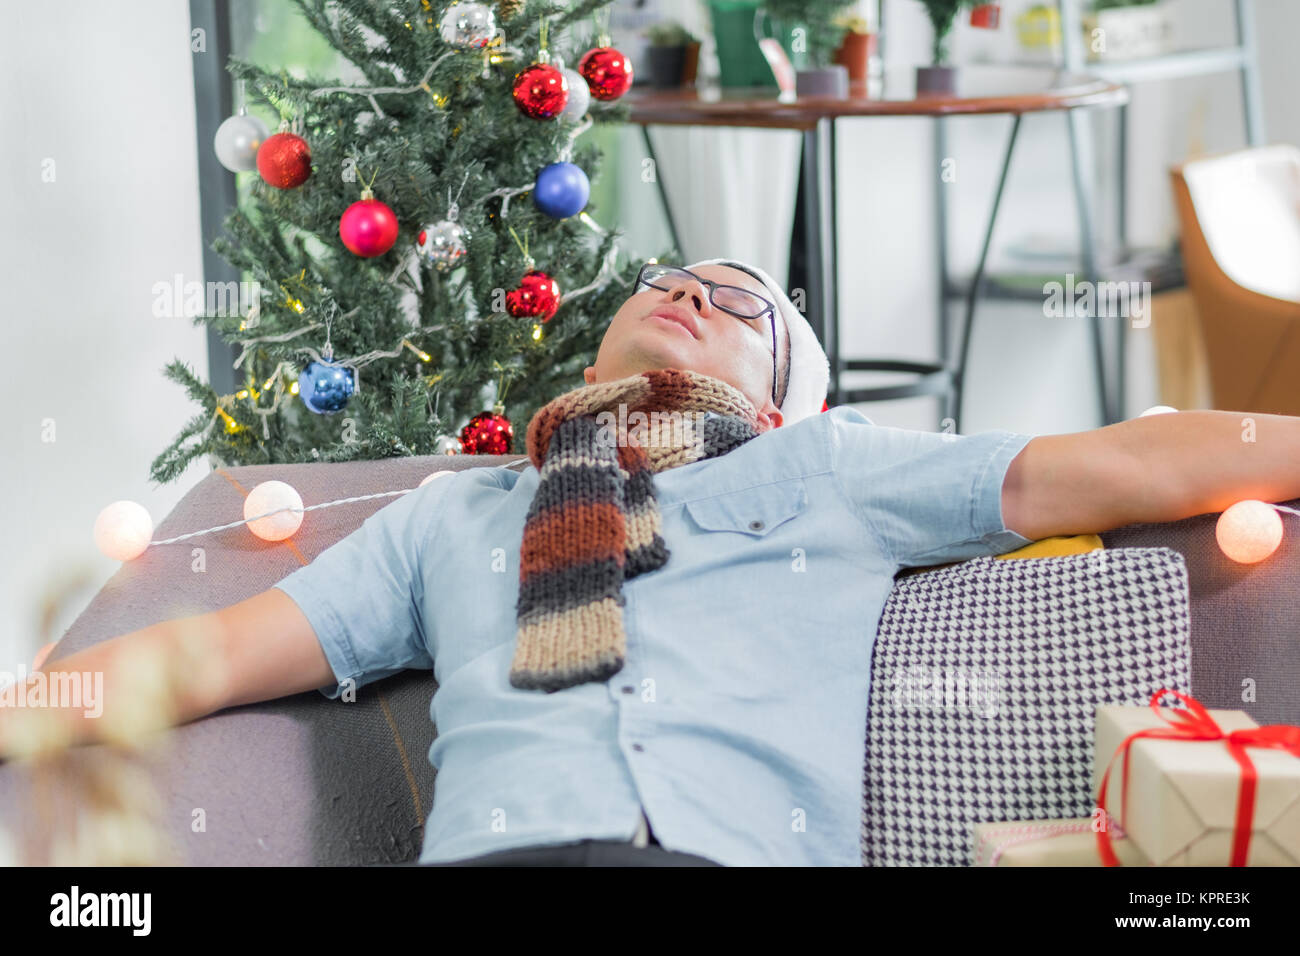 Asia man hangover and passed out sleep on sofa after heavy Christmas and new year party finish and lay on couch Stock Photo